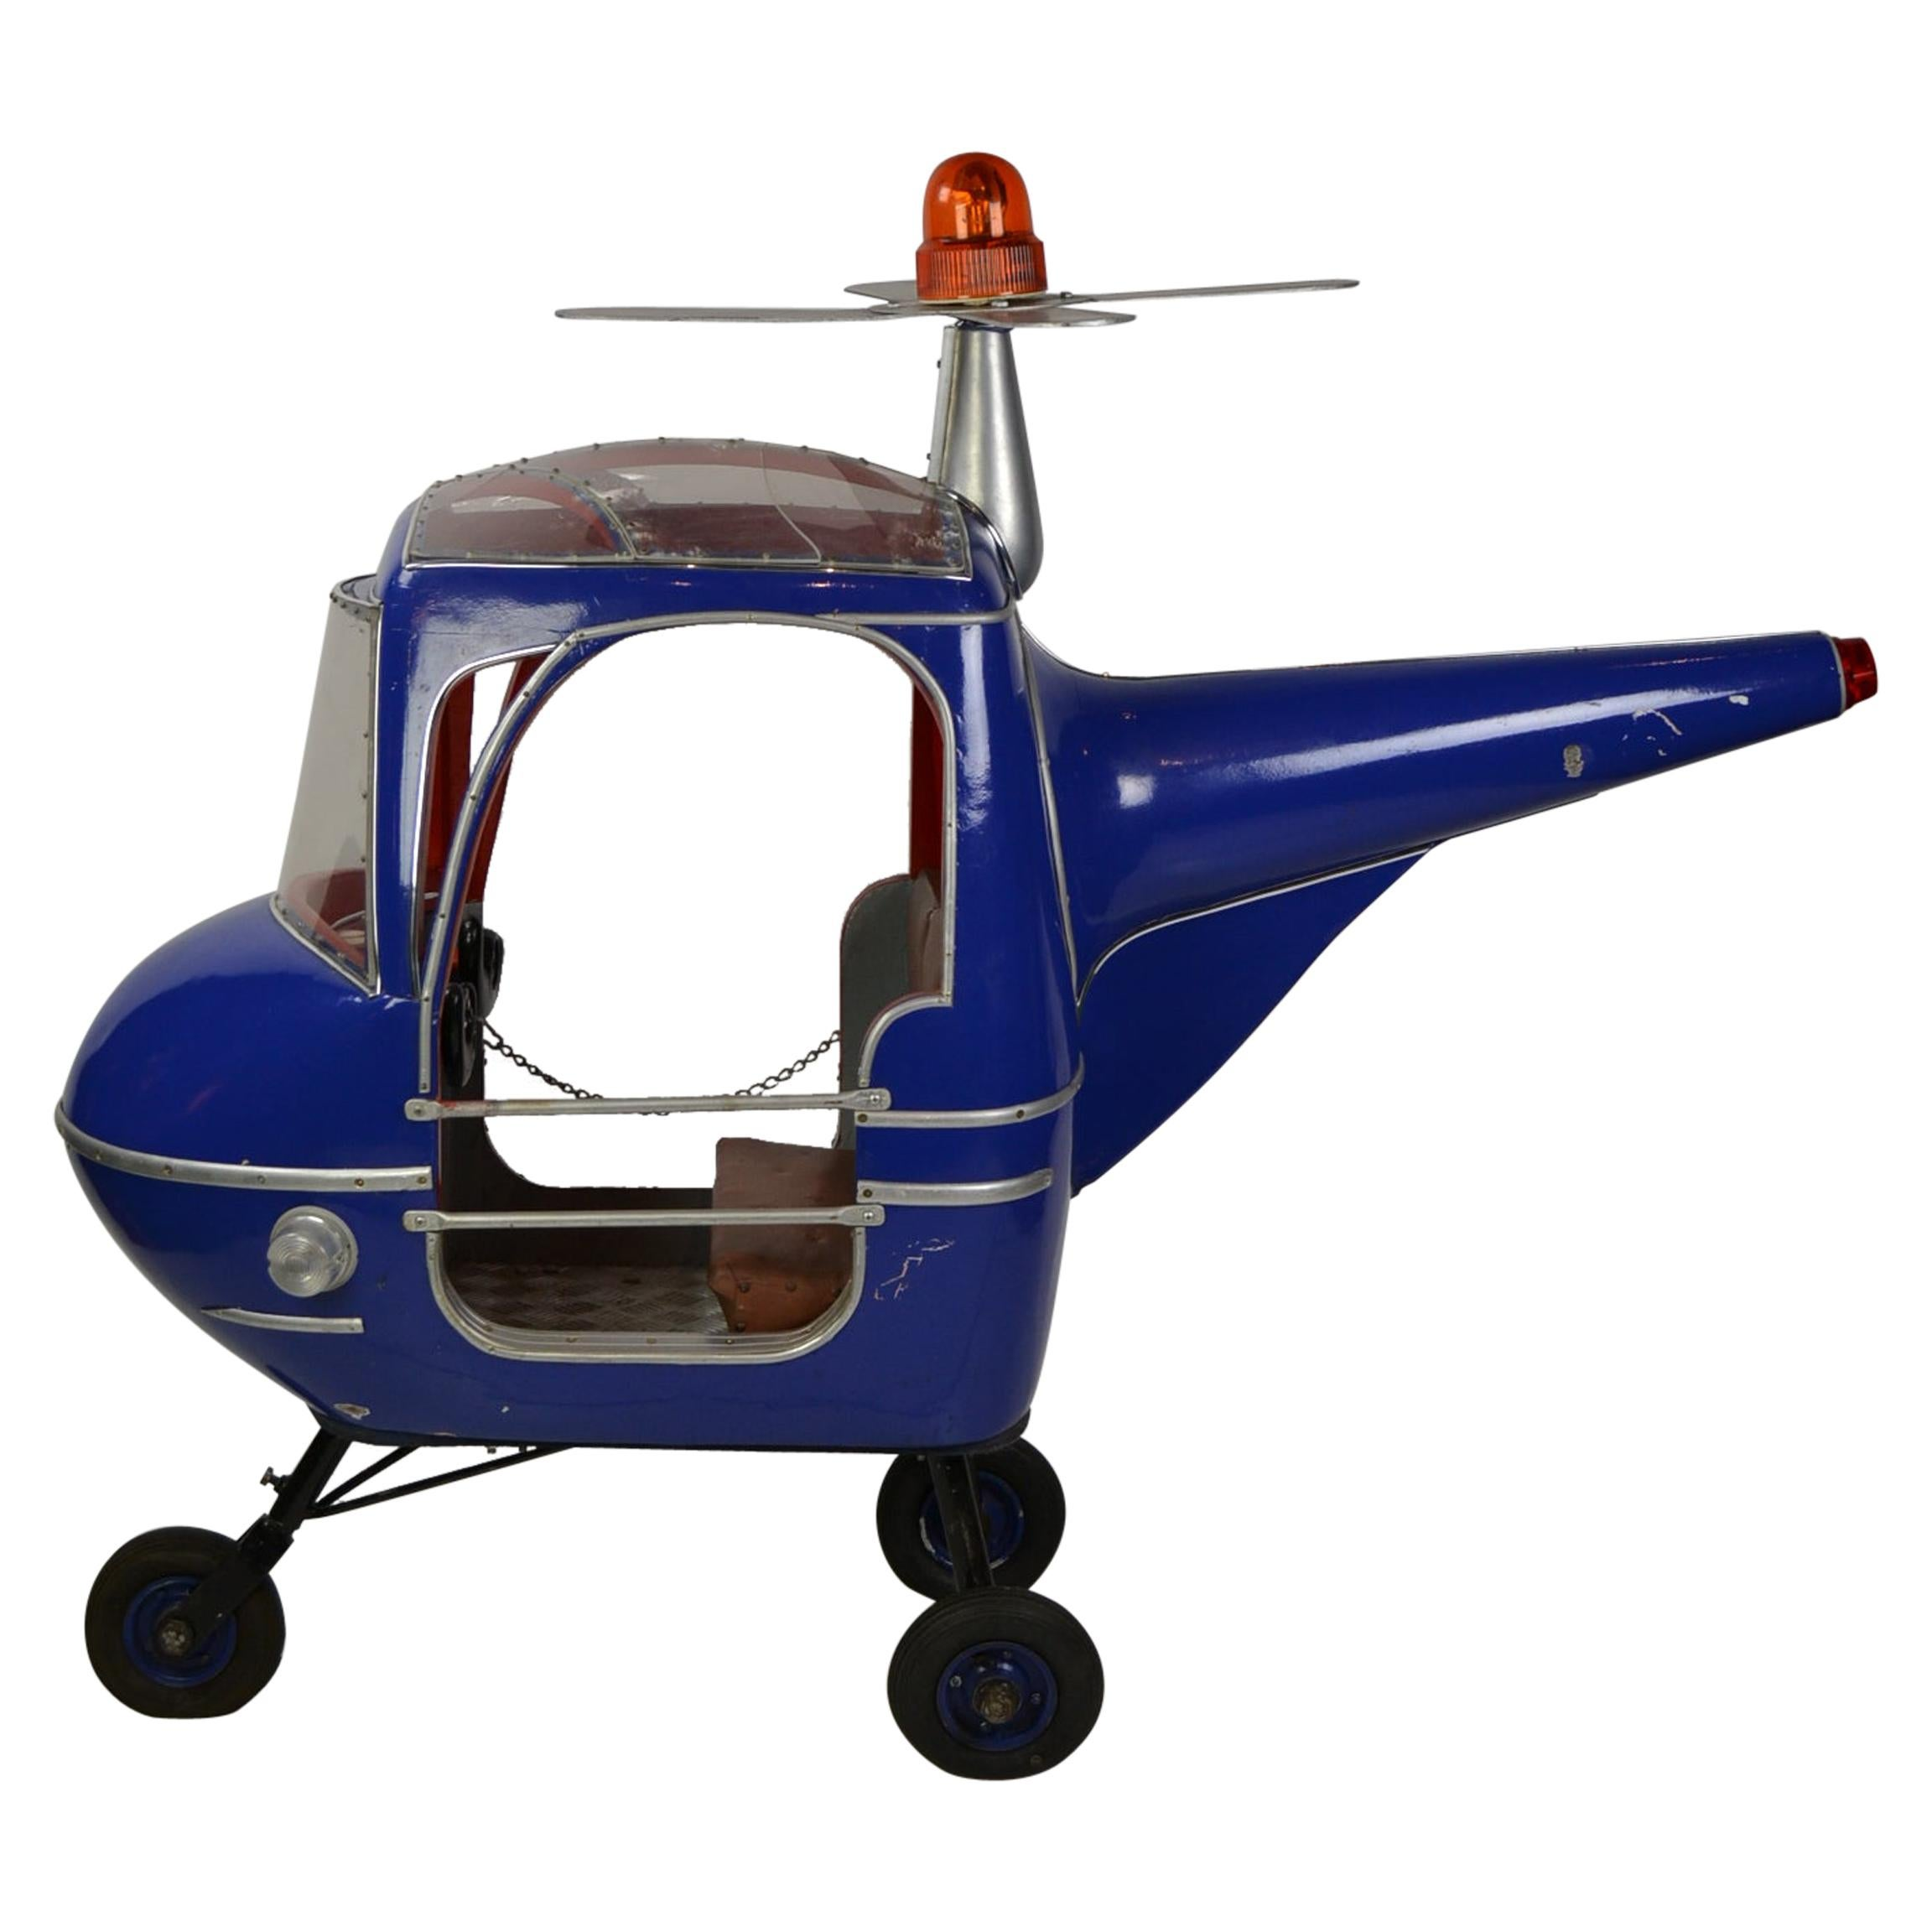 1950s Blue Carousel Ride Chopper by Hennecke, Germany, Wood and Metal